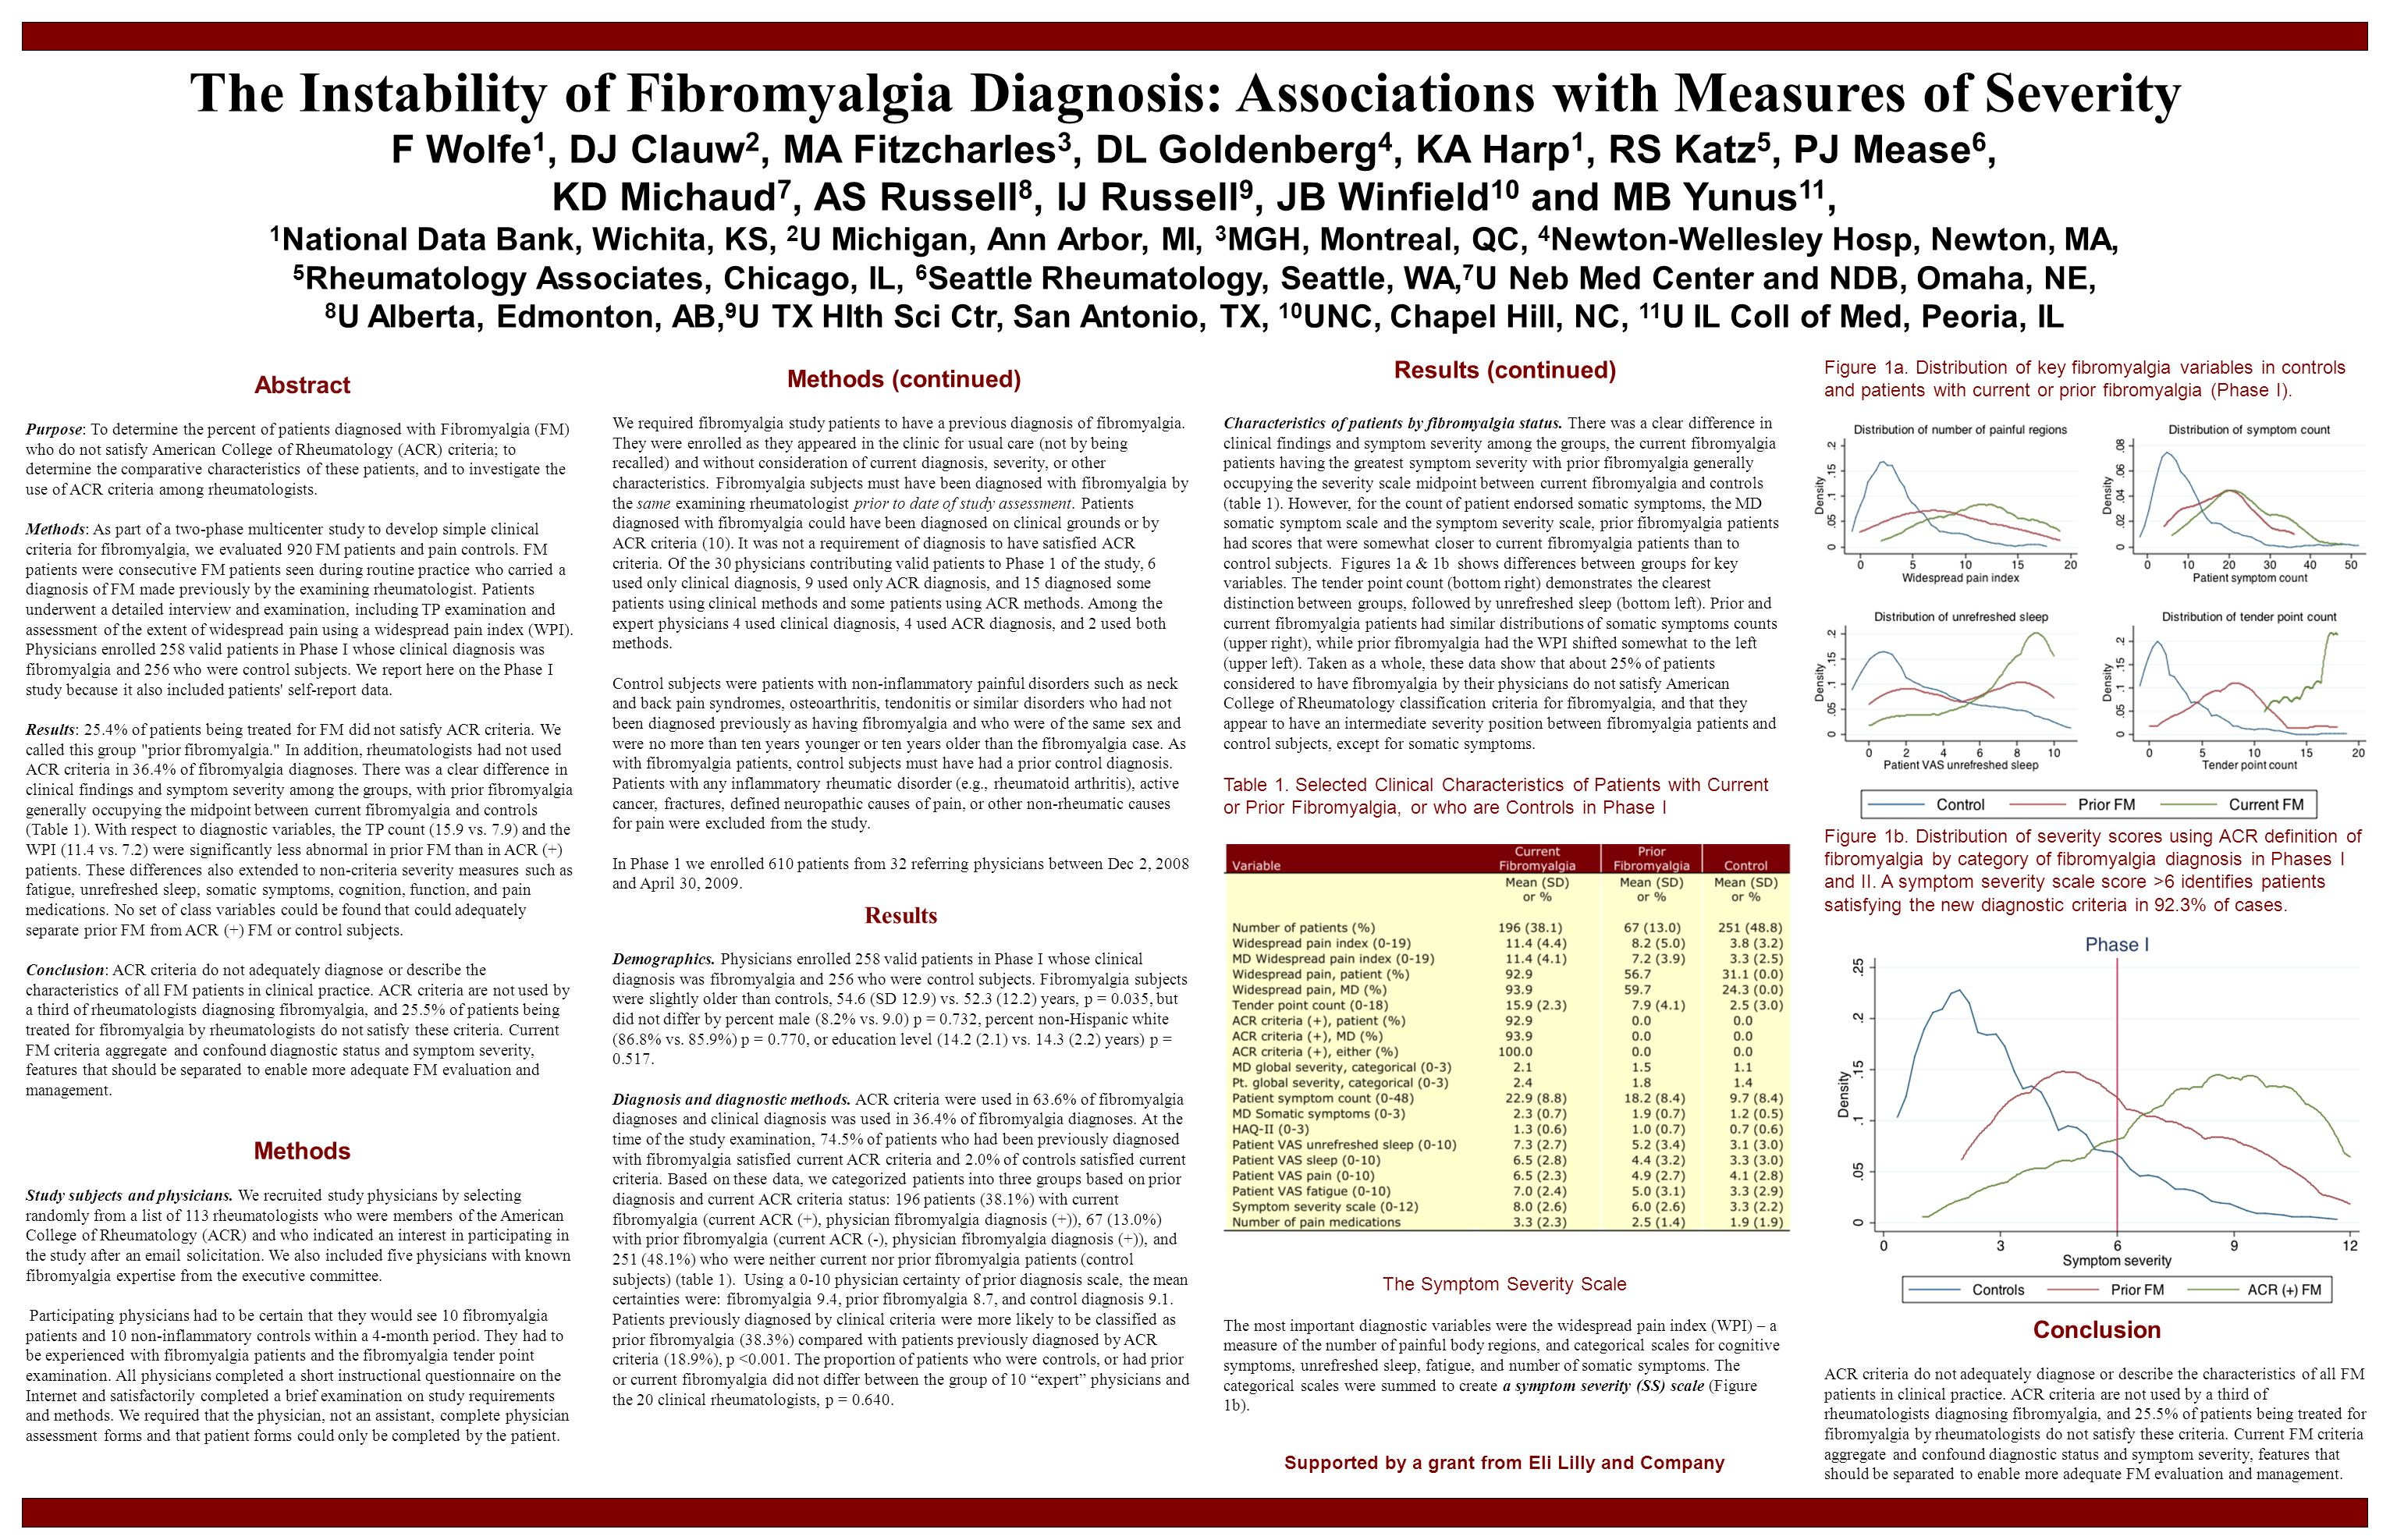 The Instability of Fibromyalgia Diagnosis: Associations with Measures of Severity